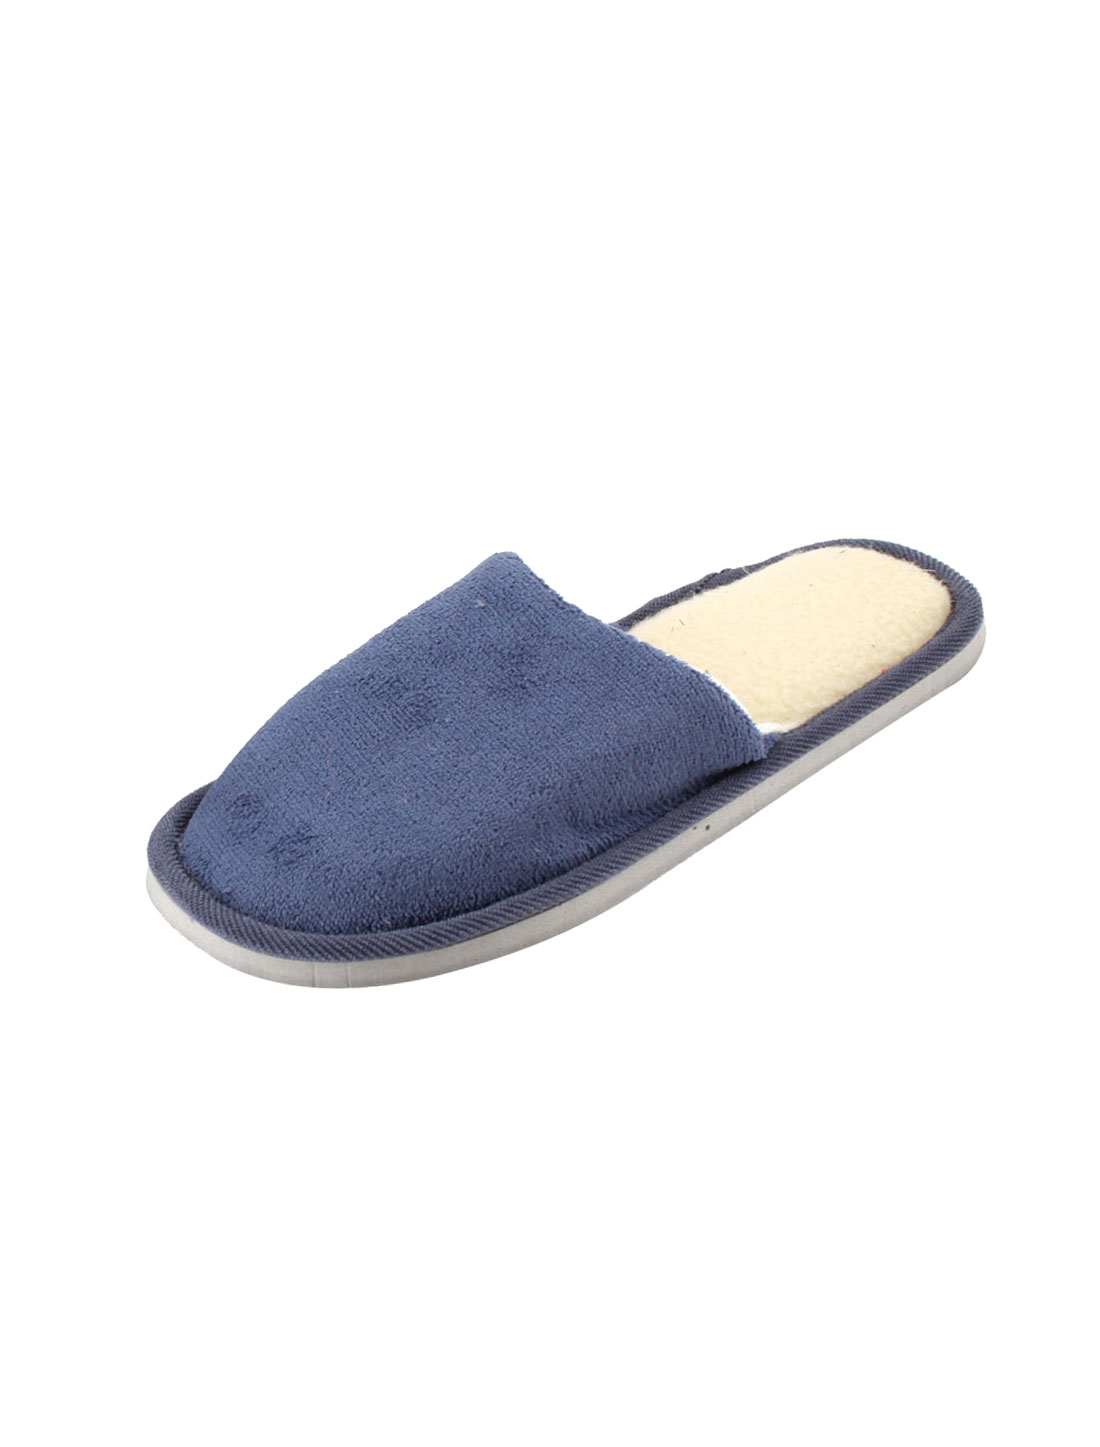 Dark Blue Foam Sole Winter Warm Slippers Shoes US Size 9.5 Pair for Man